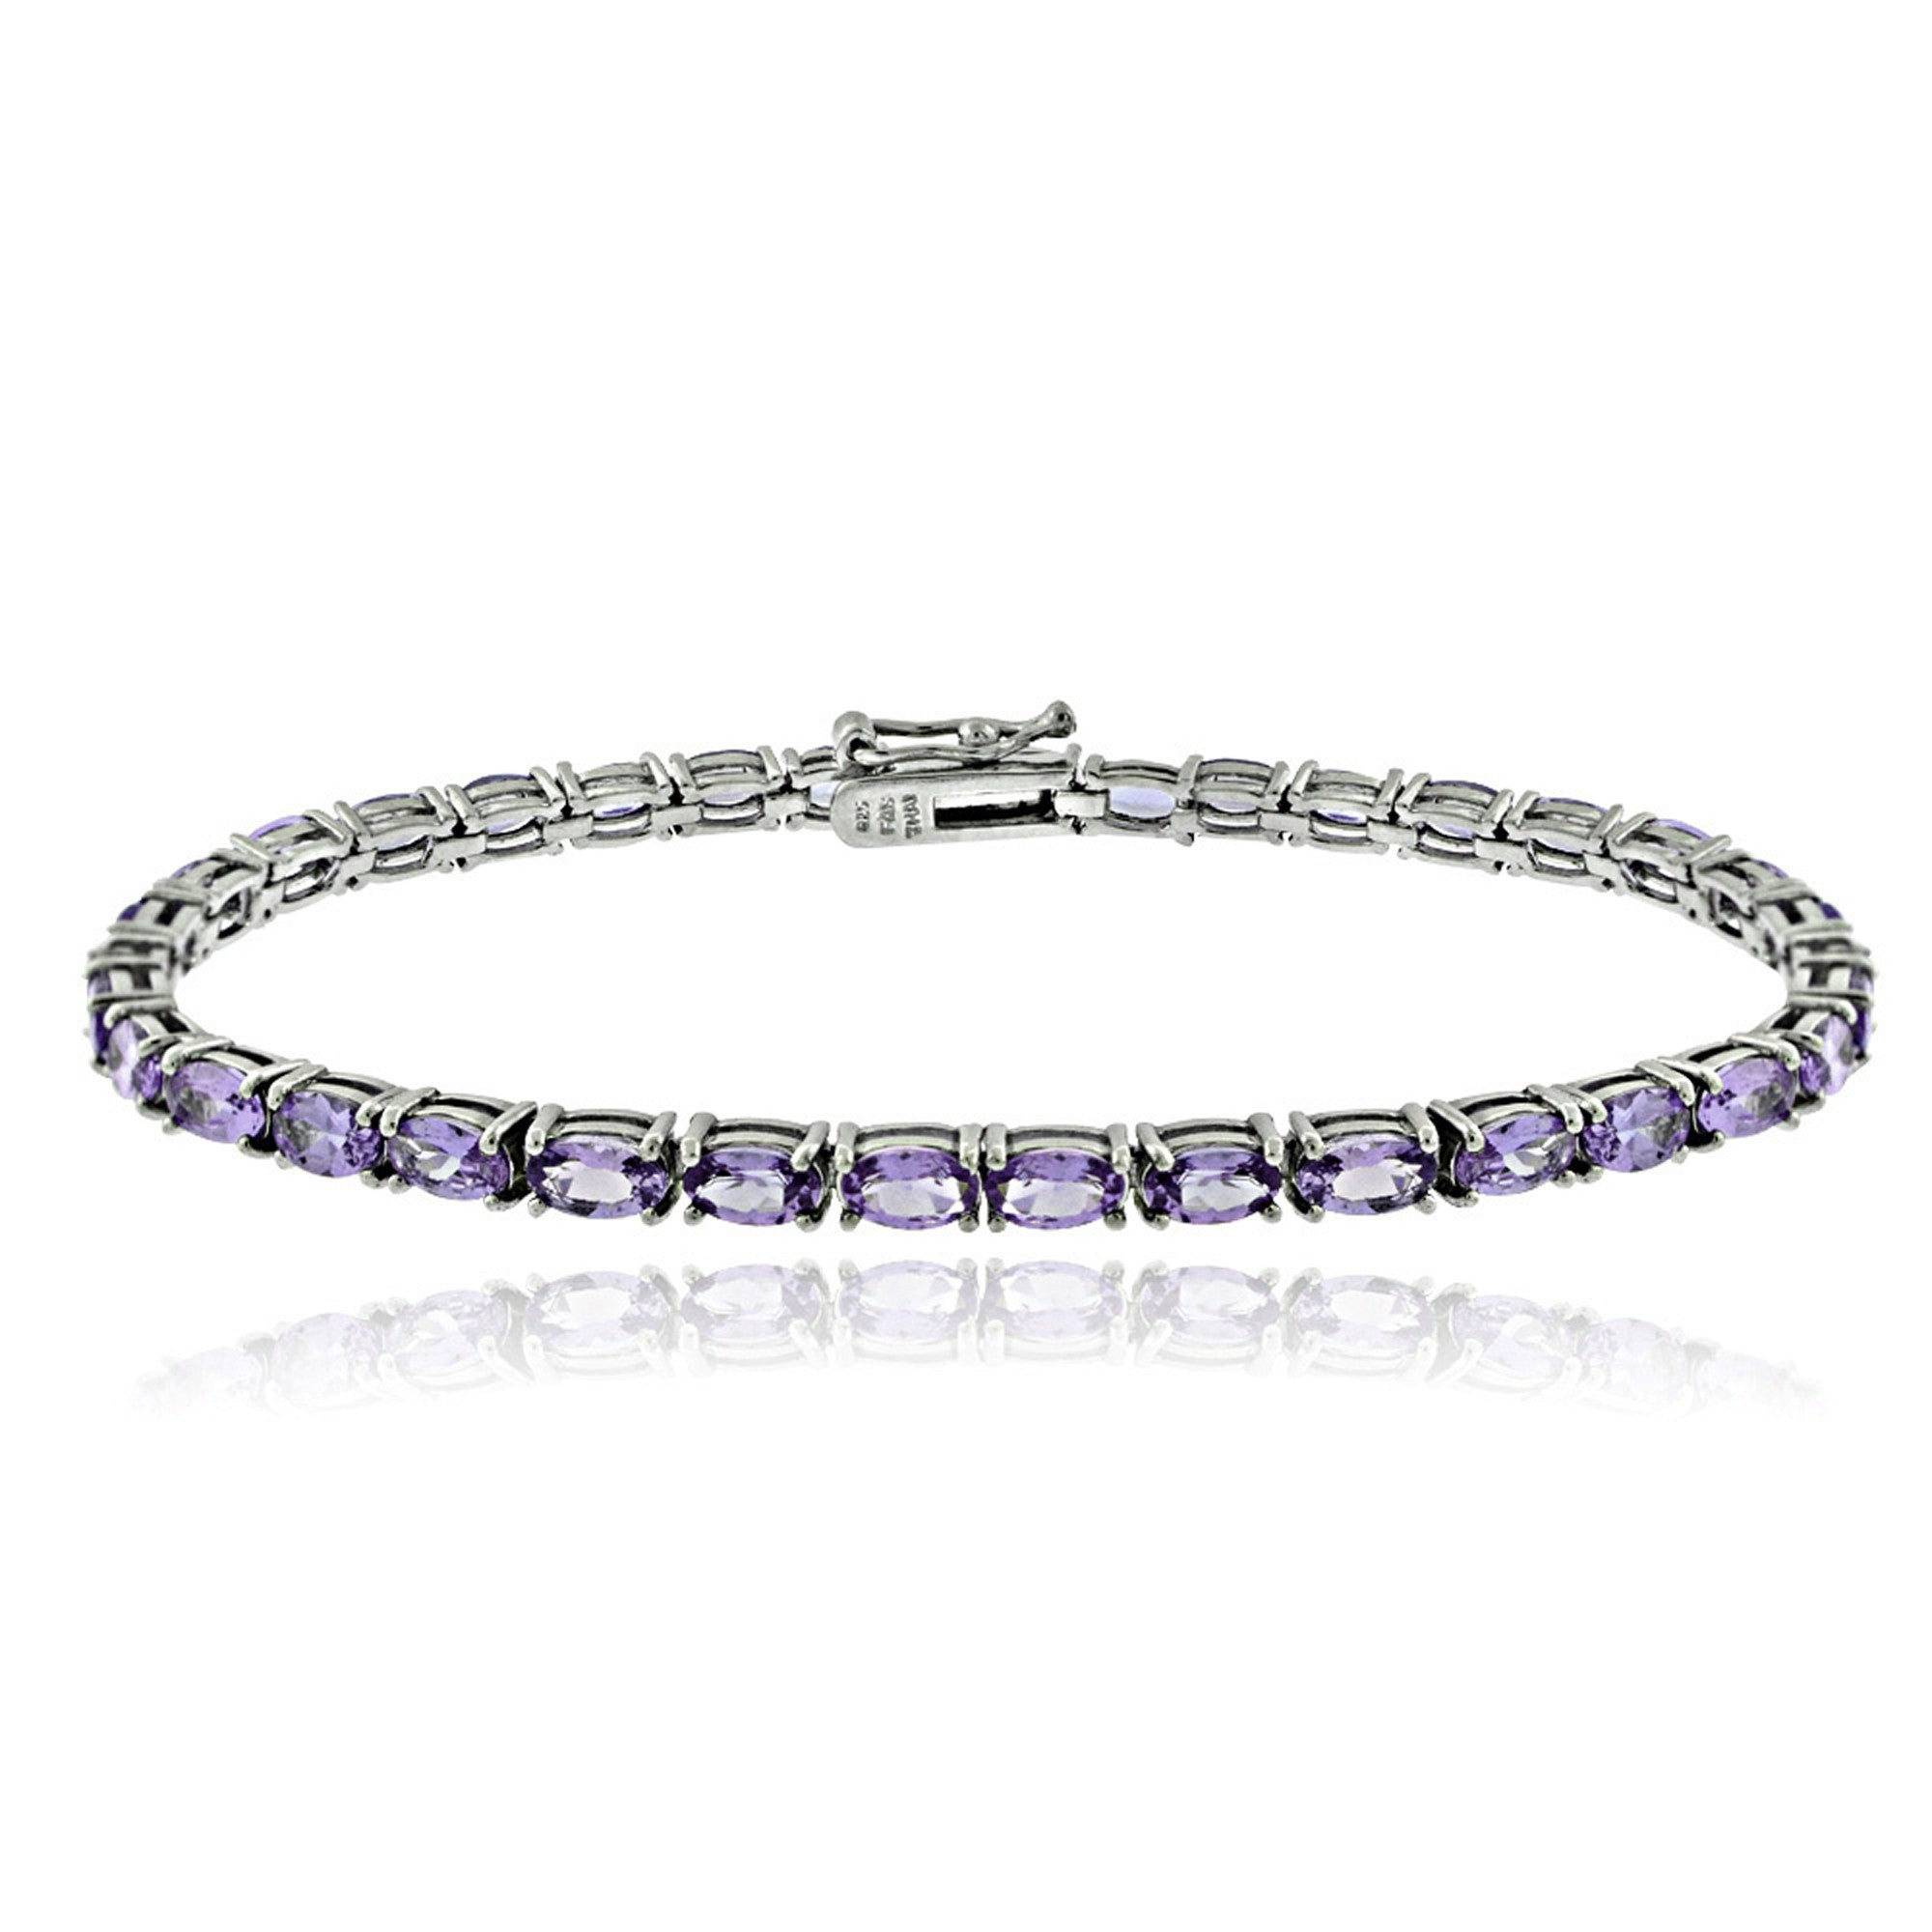 Birthstone Tennis Bracelet With CZ & Gem Accents in Sterling Silver - February Amethyst